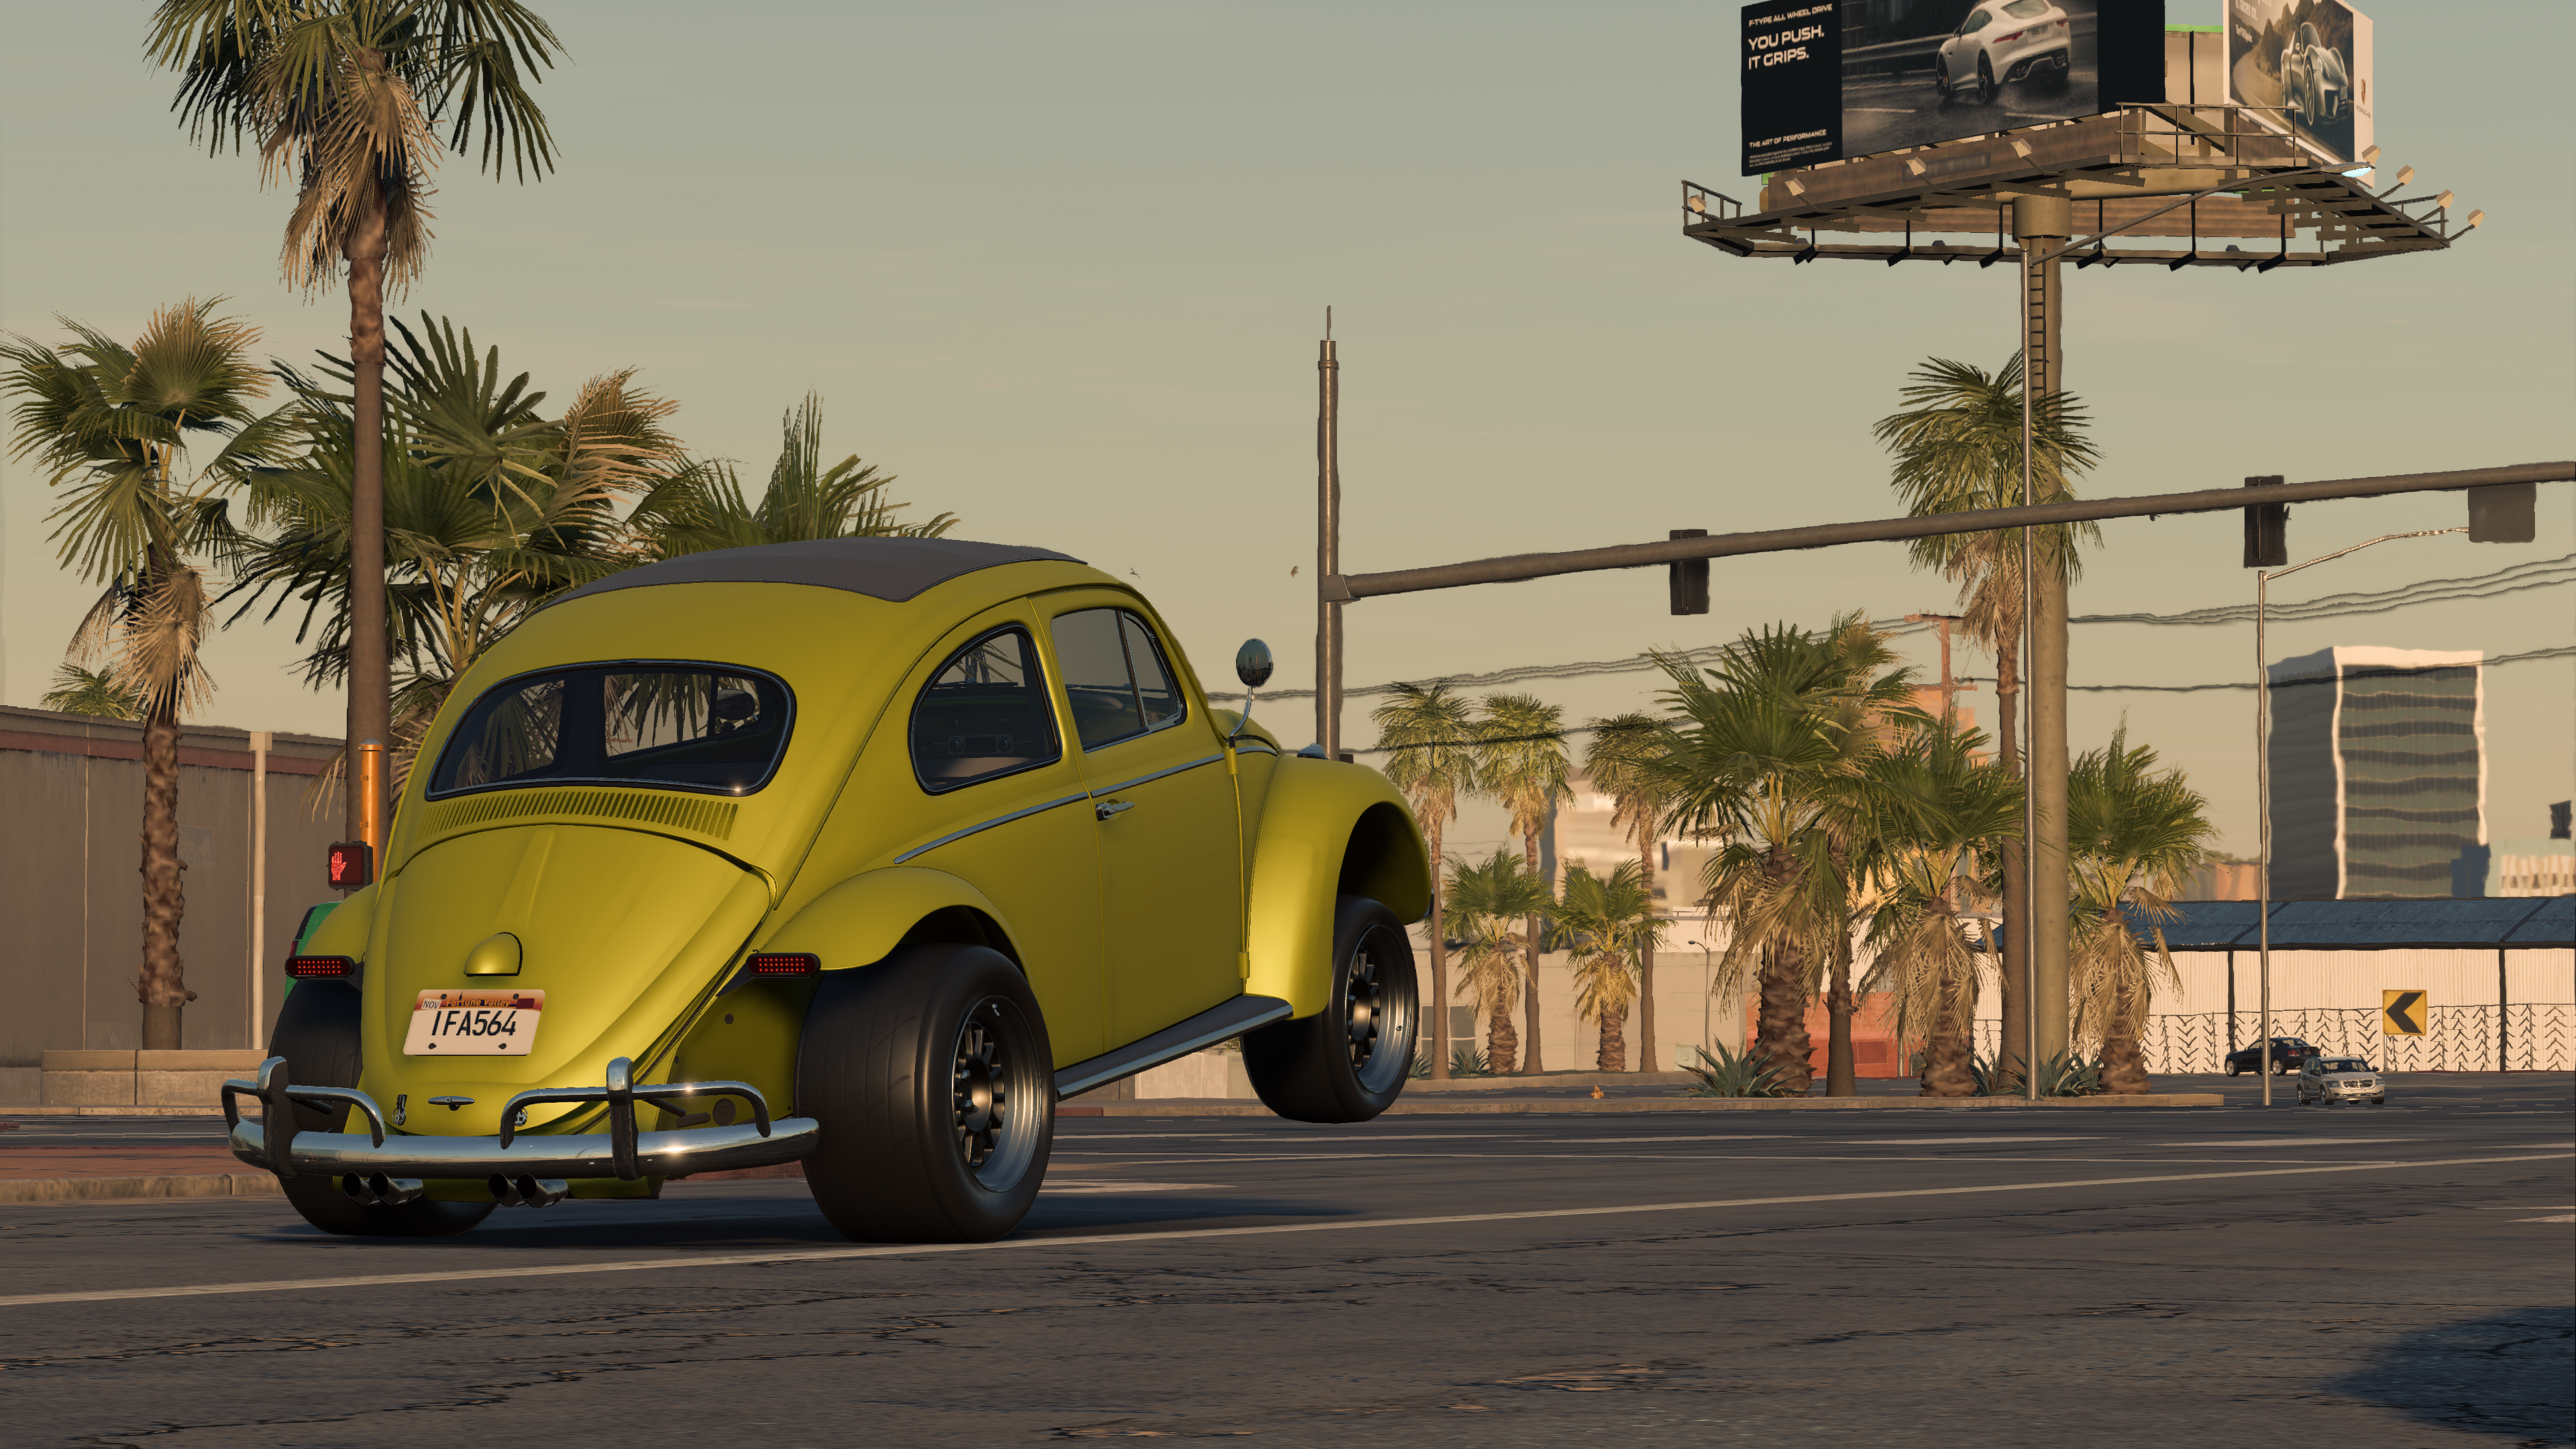 Need for speed payback 1963 vw beetle derelict parts location guide